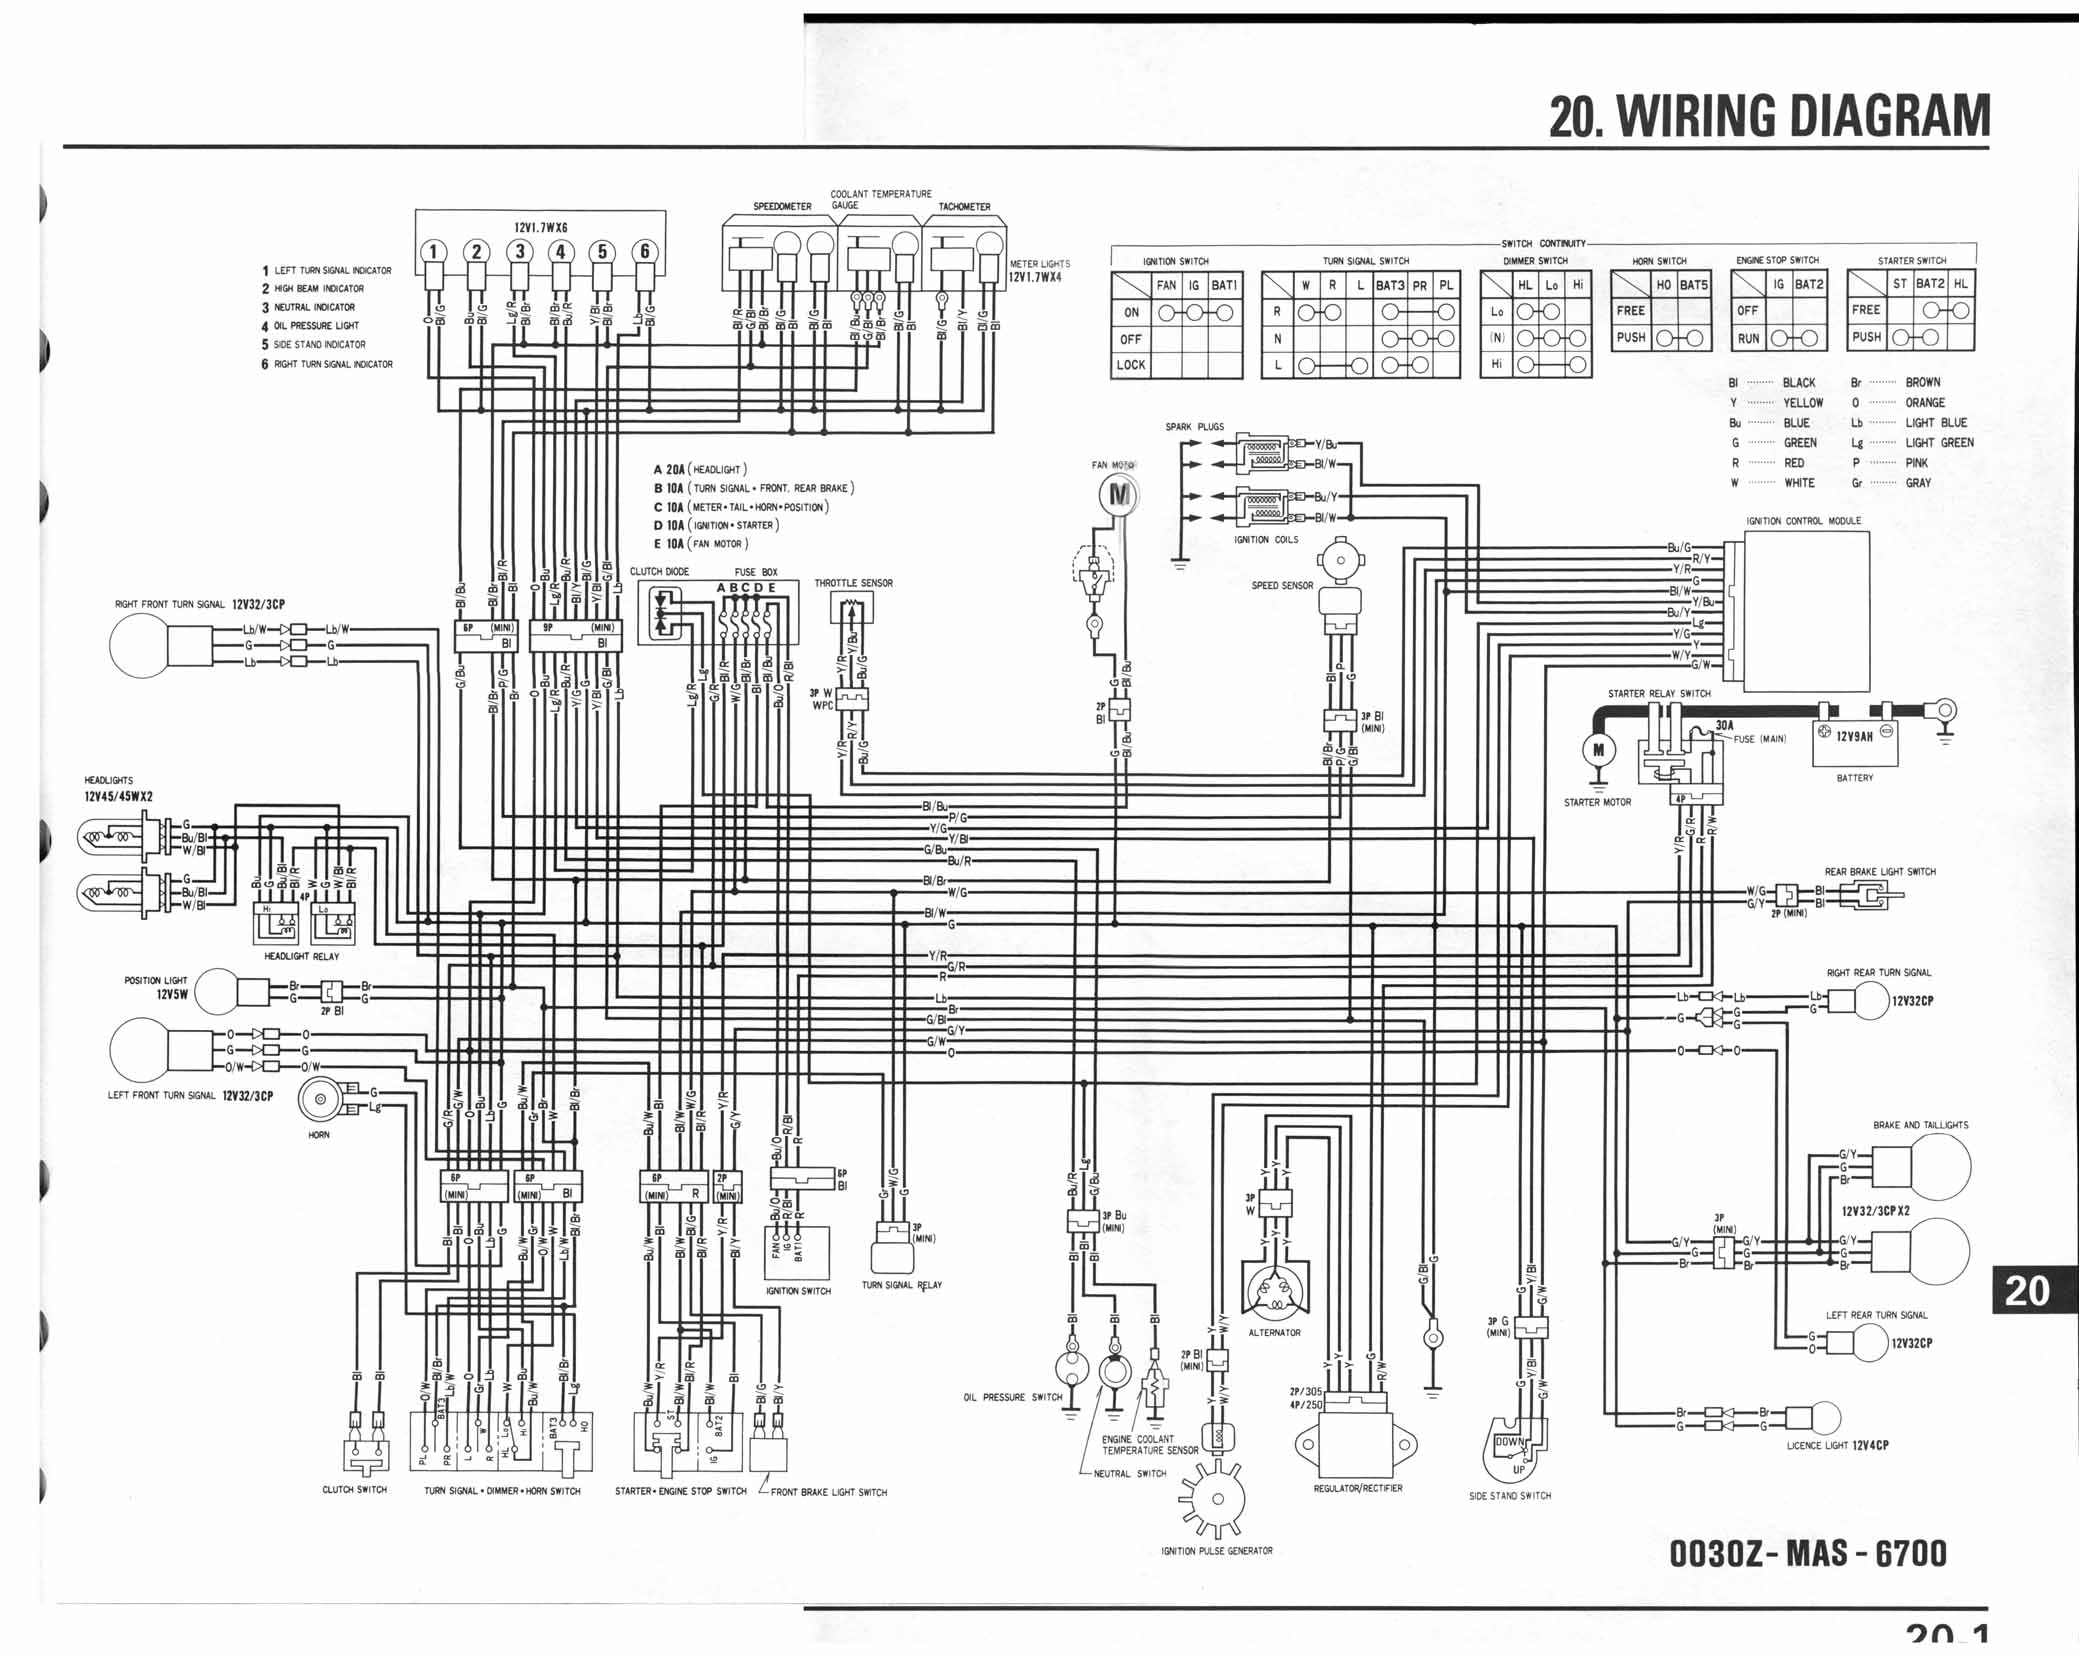 900rr wiring s diagrams 800548 honda ct70 wiring diagram ct70 wiring diagrams honda trail 90 wiring diagram at readyjetset.co